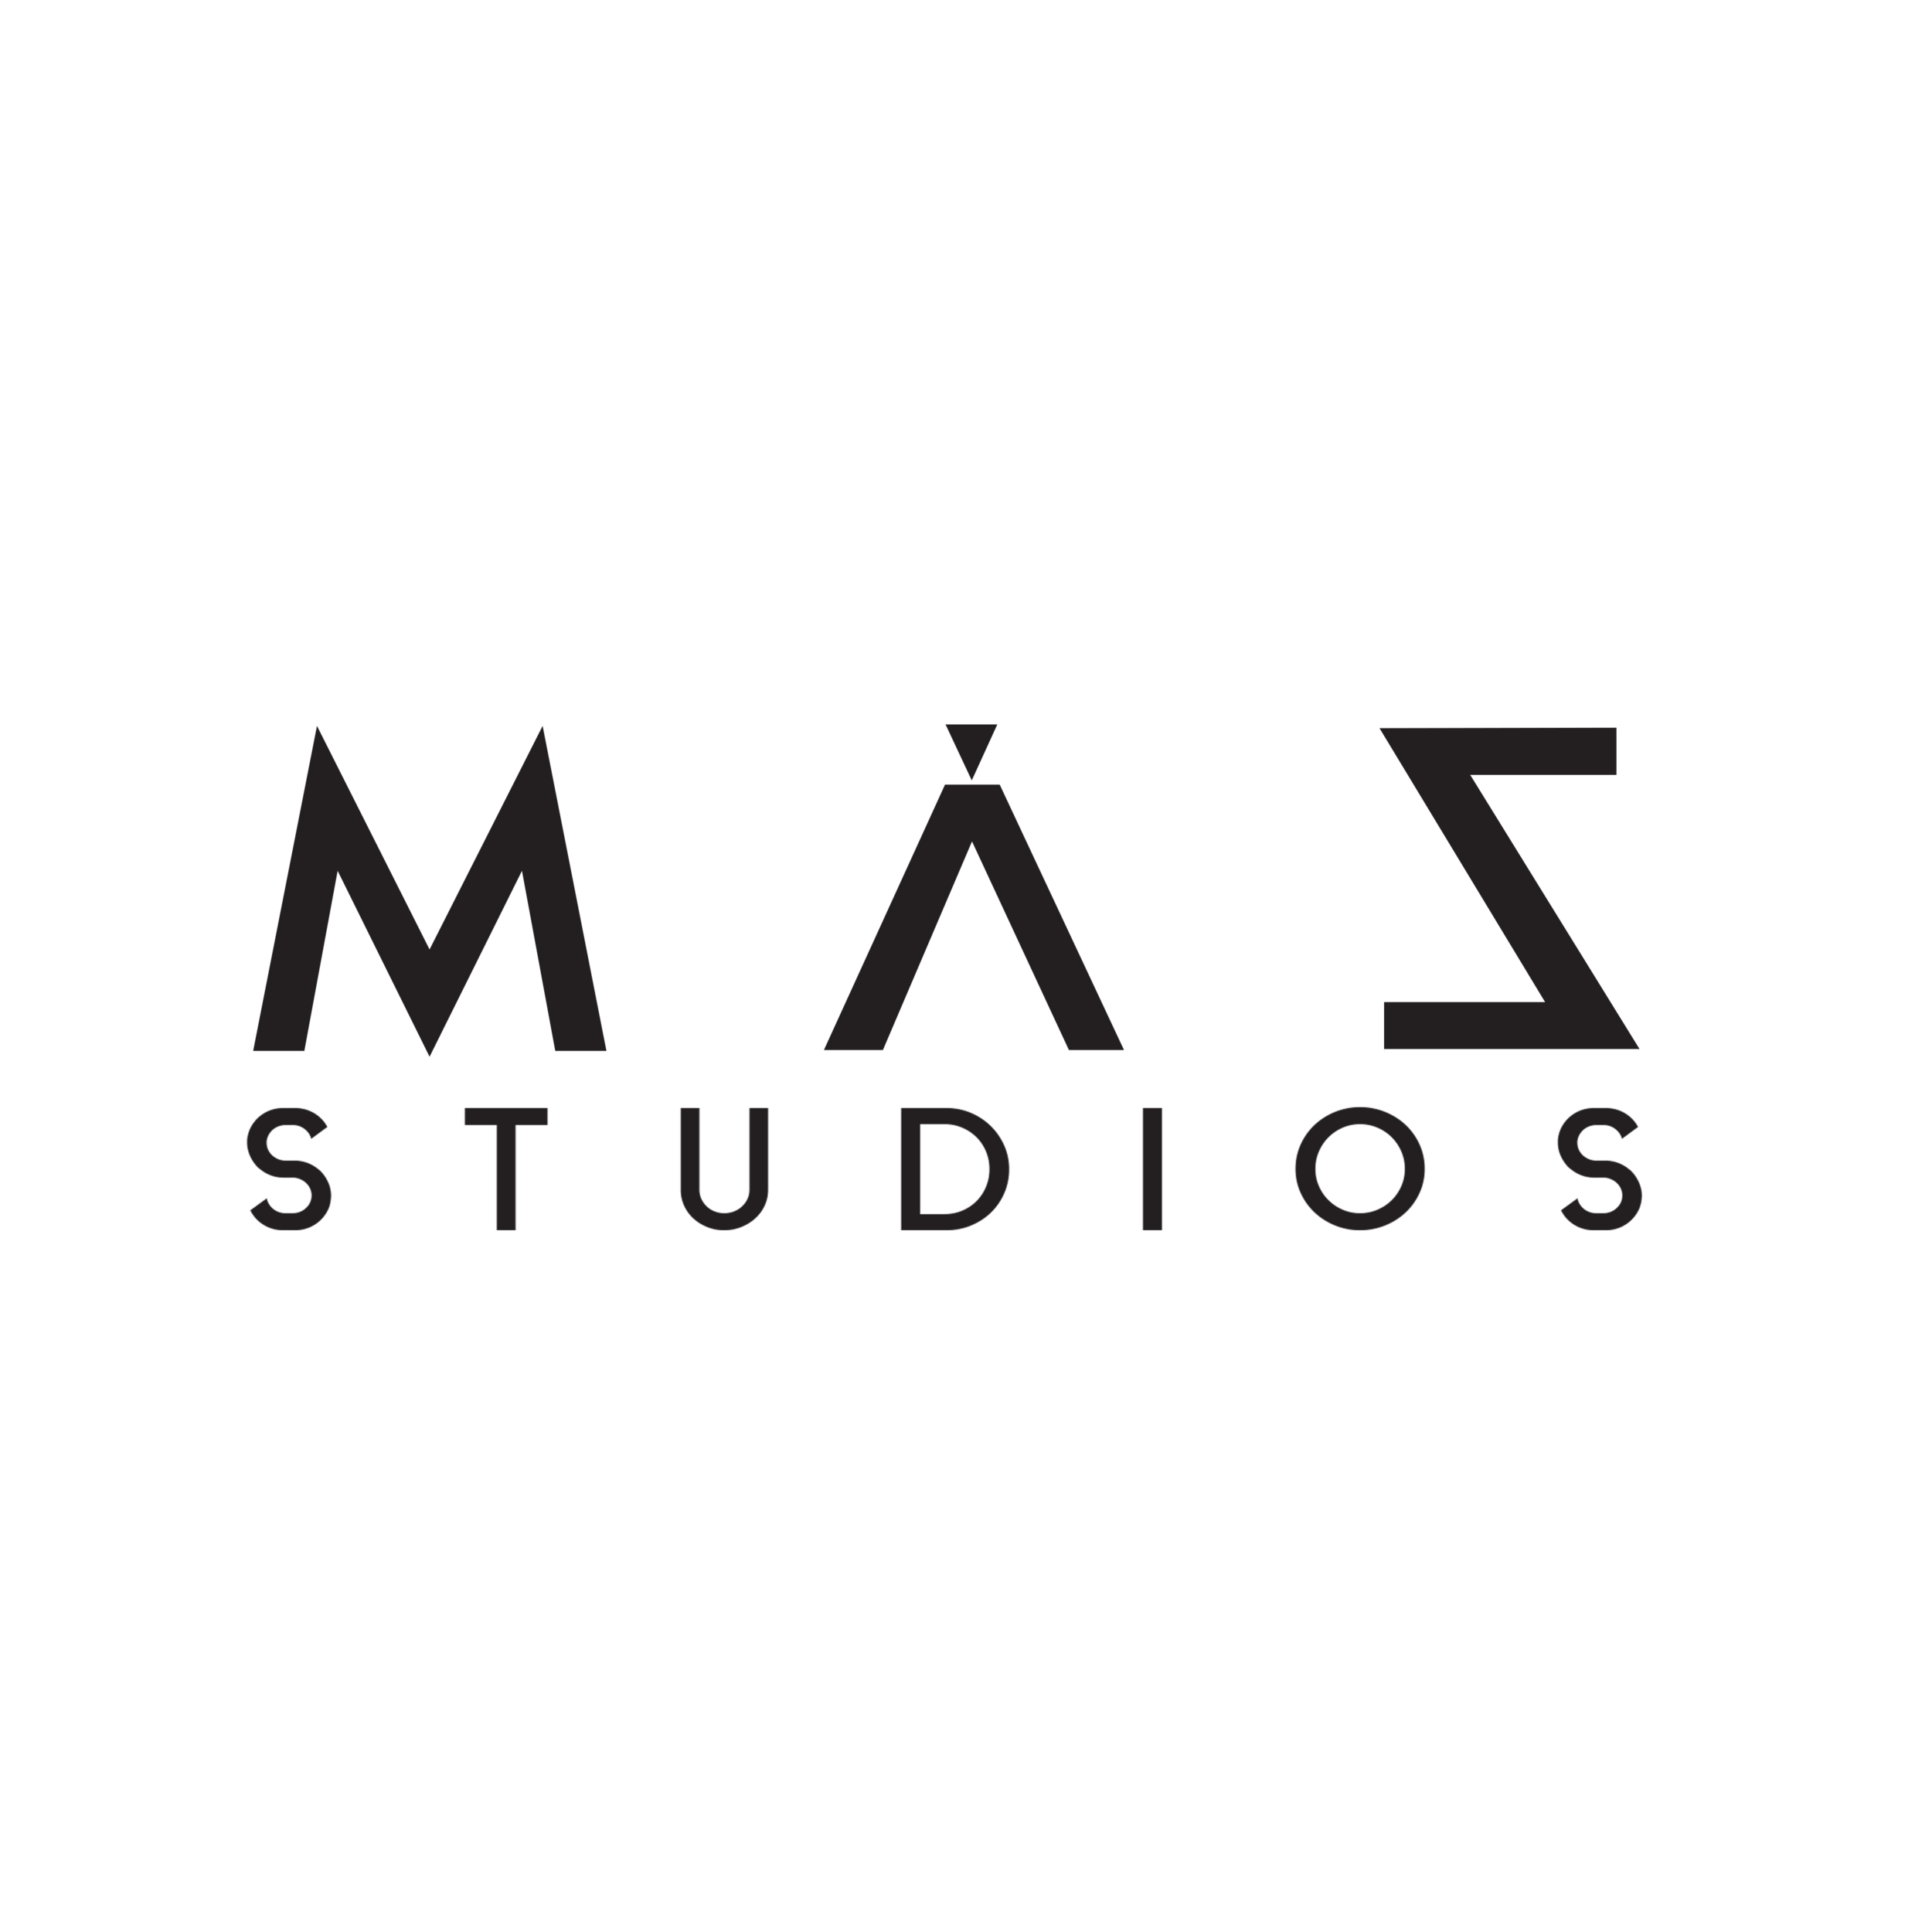 MAS STUDIOS LOGO (text only).png